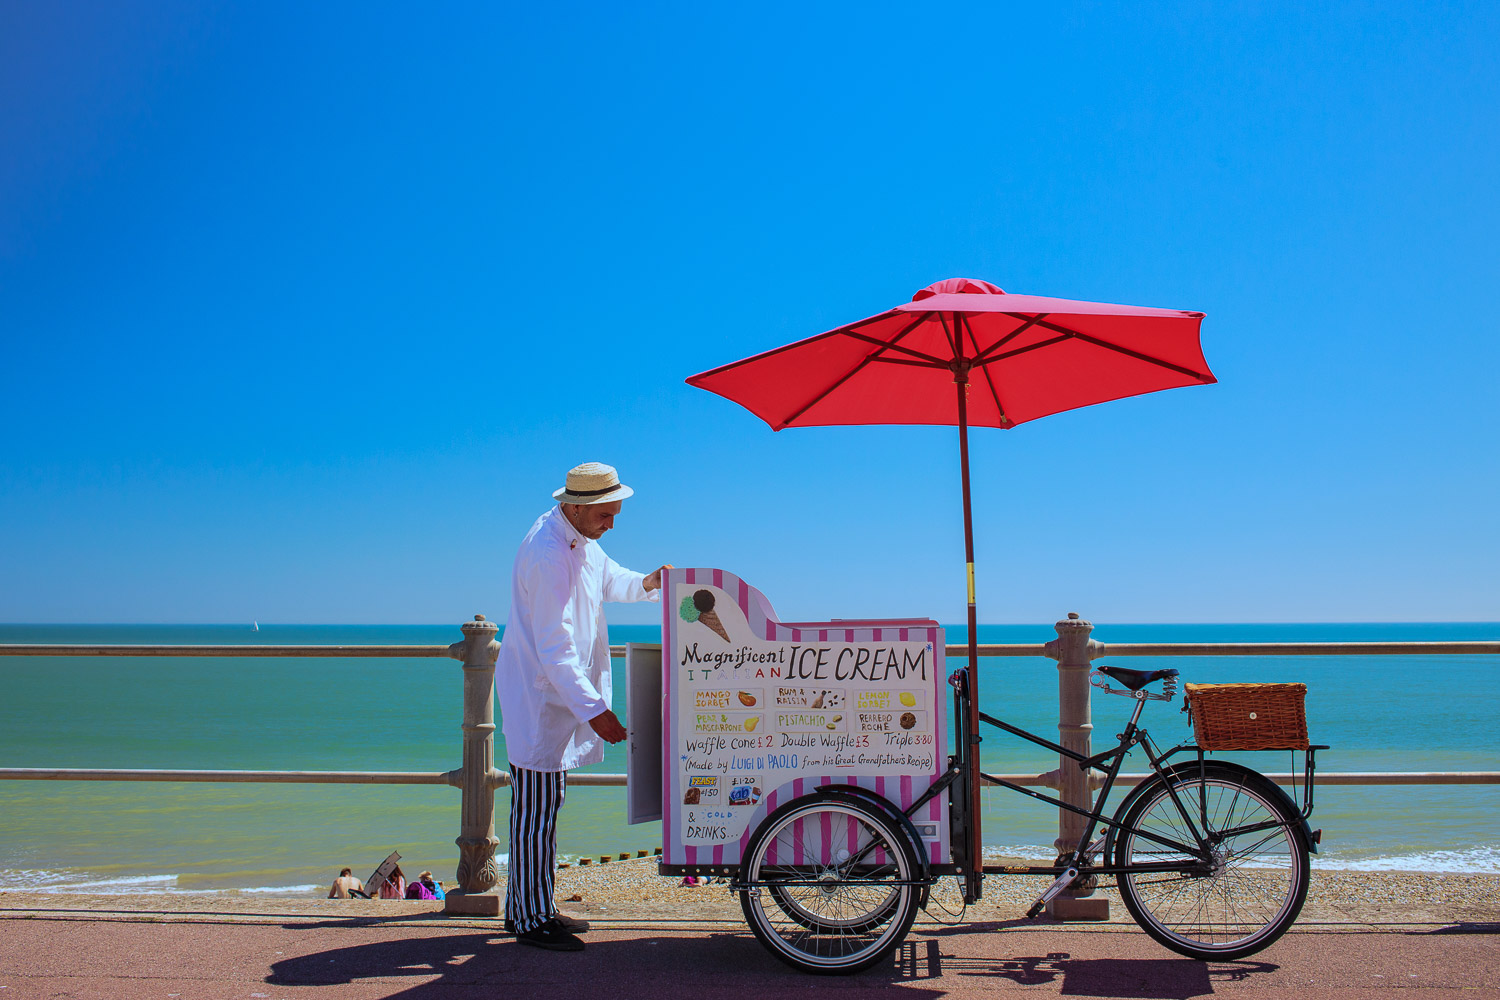 Stop Me And Buy One - a gelato vendor sets up for business on the seafront promenade at Hastings.